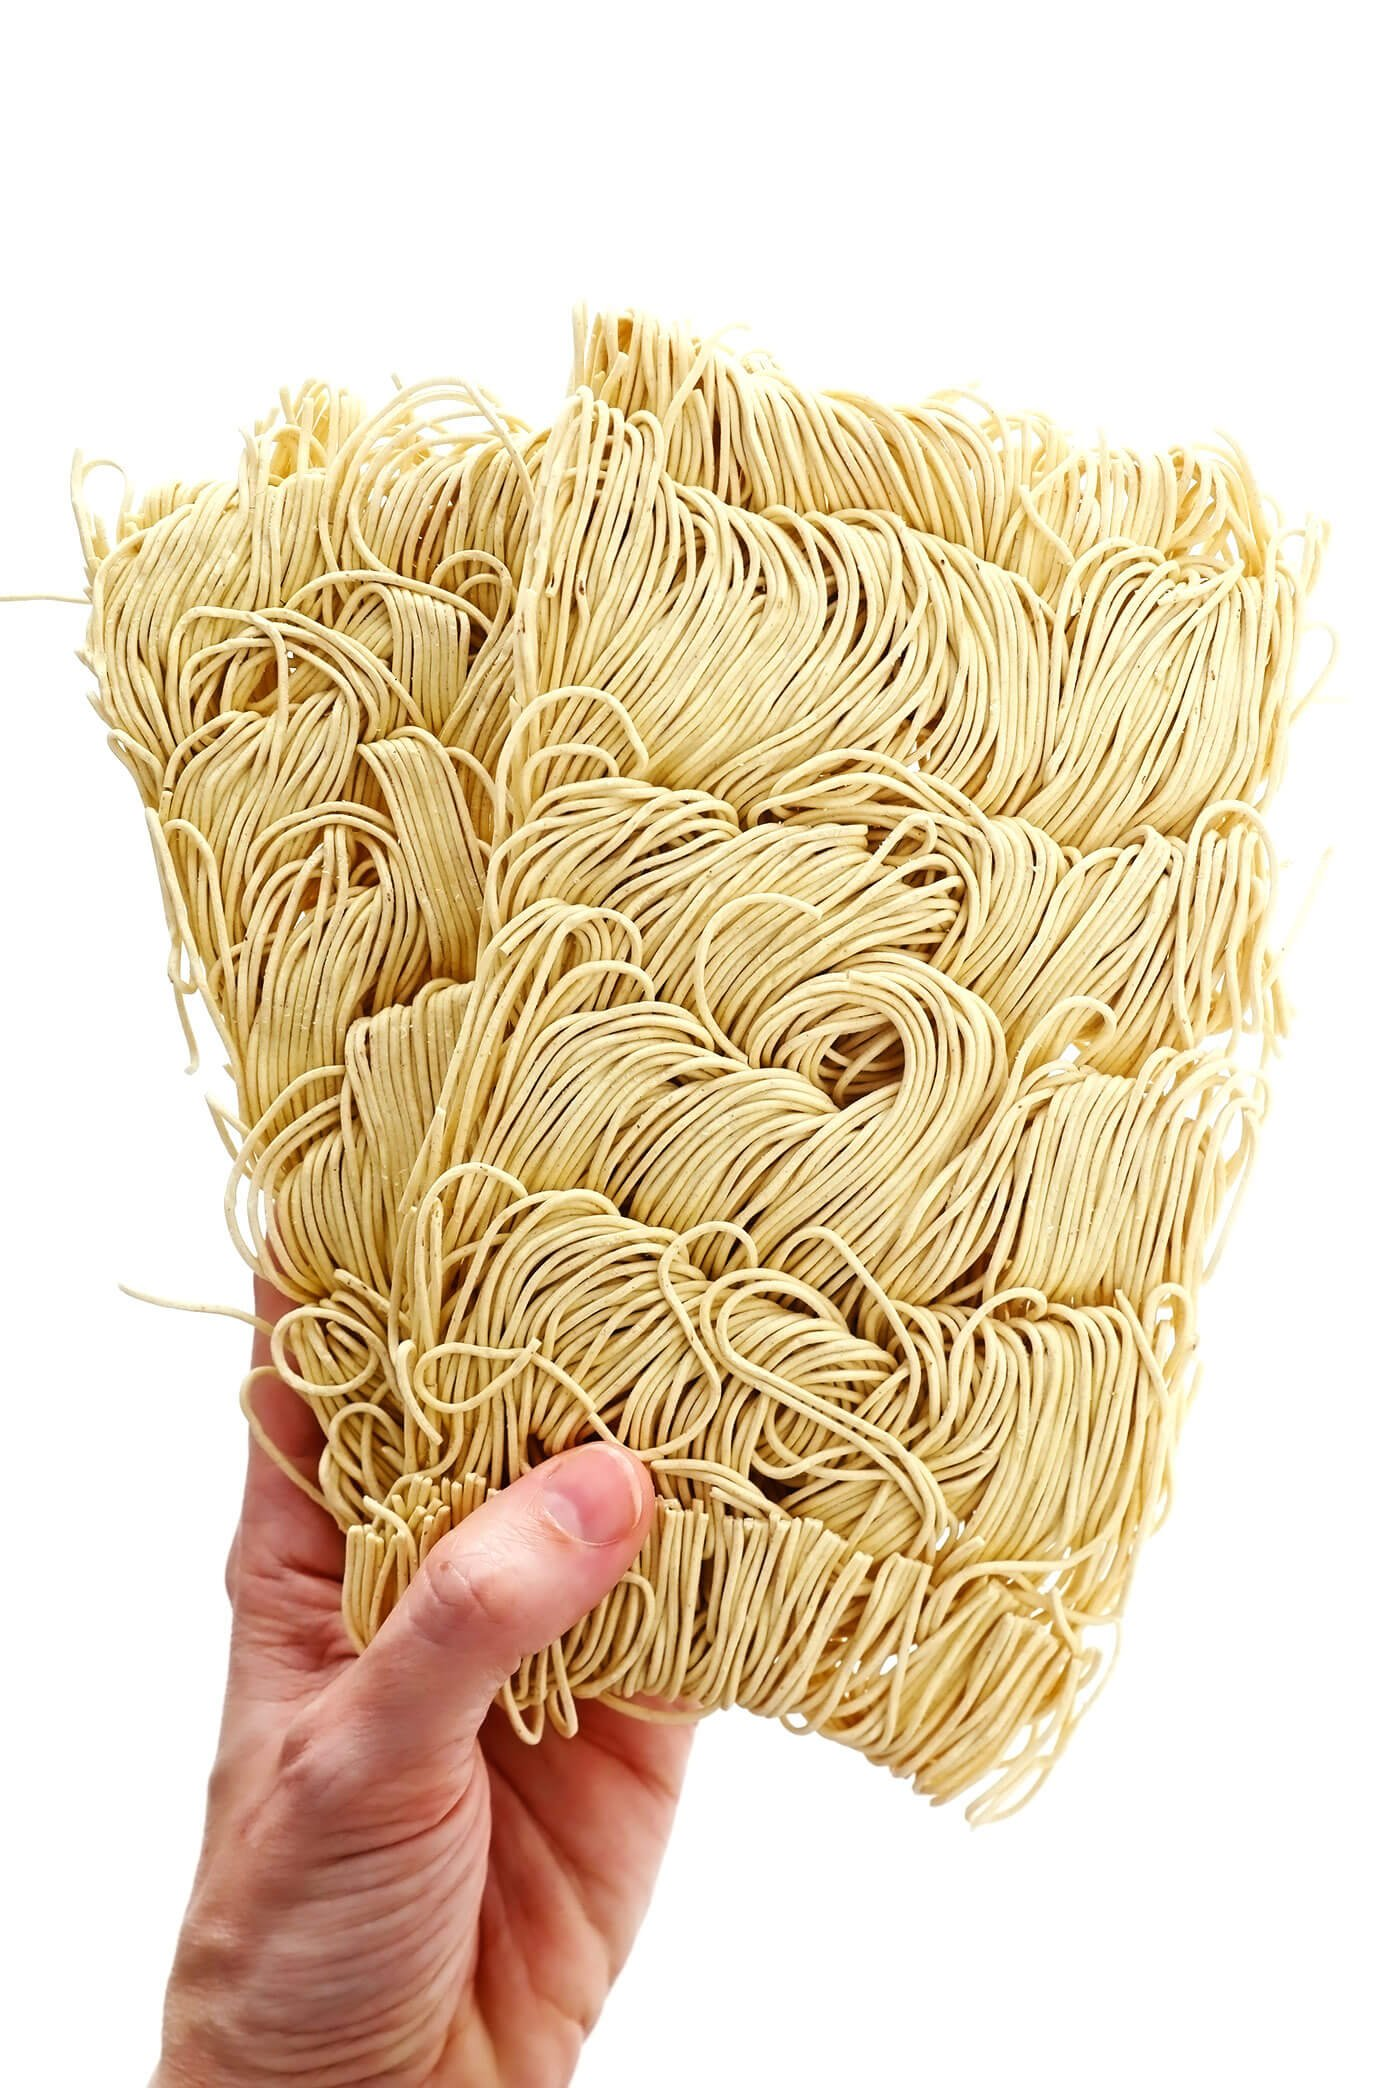 Chinese Chow Mein Noodles (Egg Noodles)